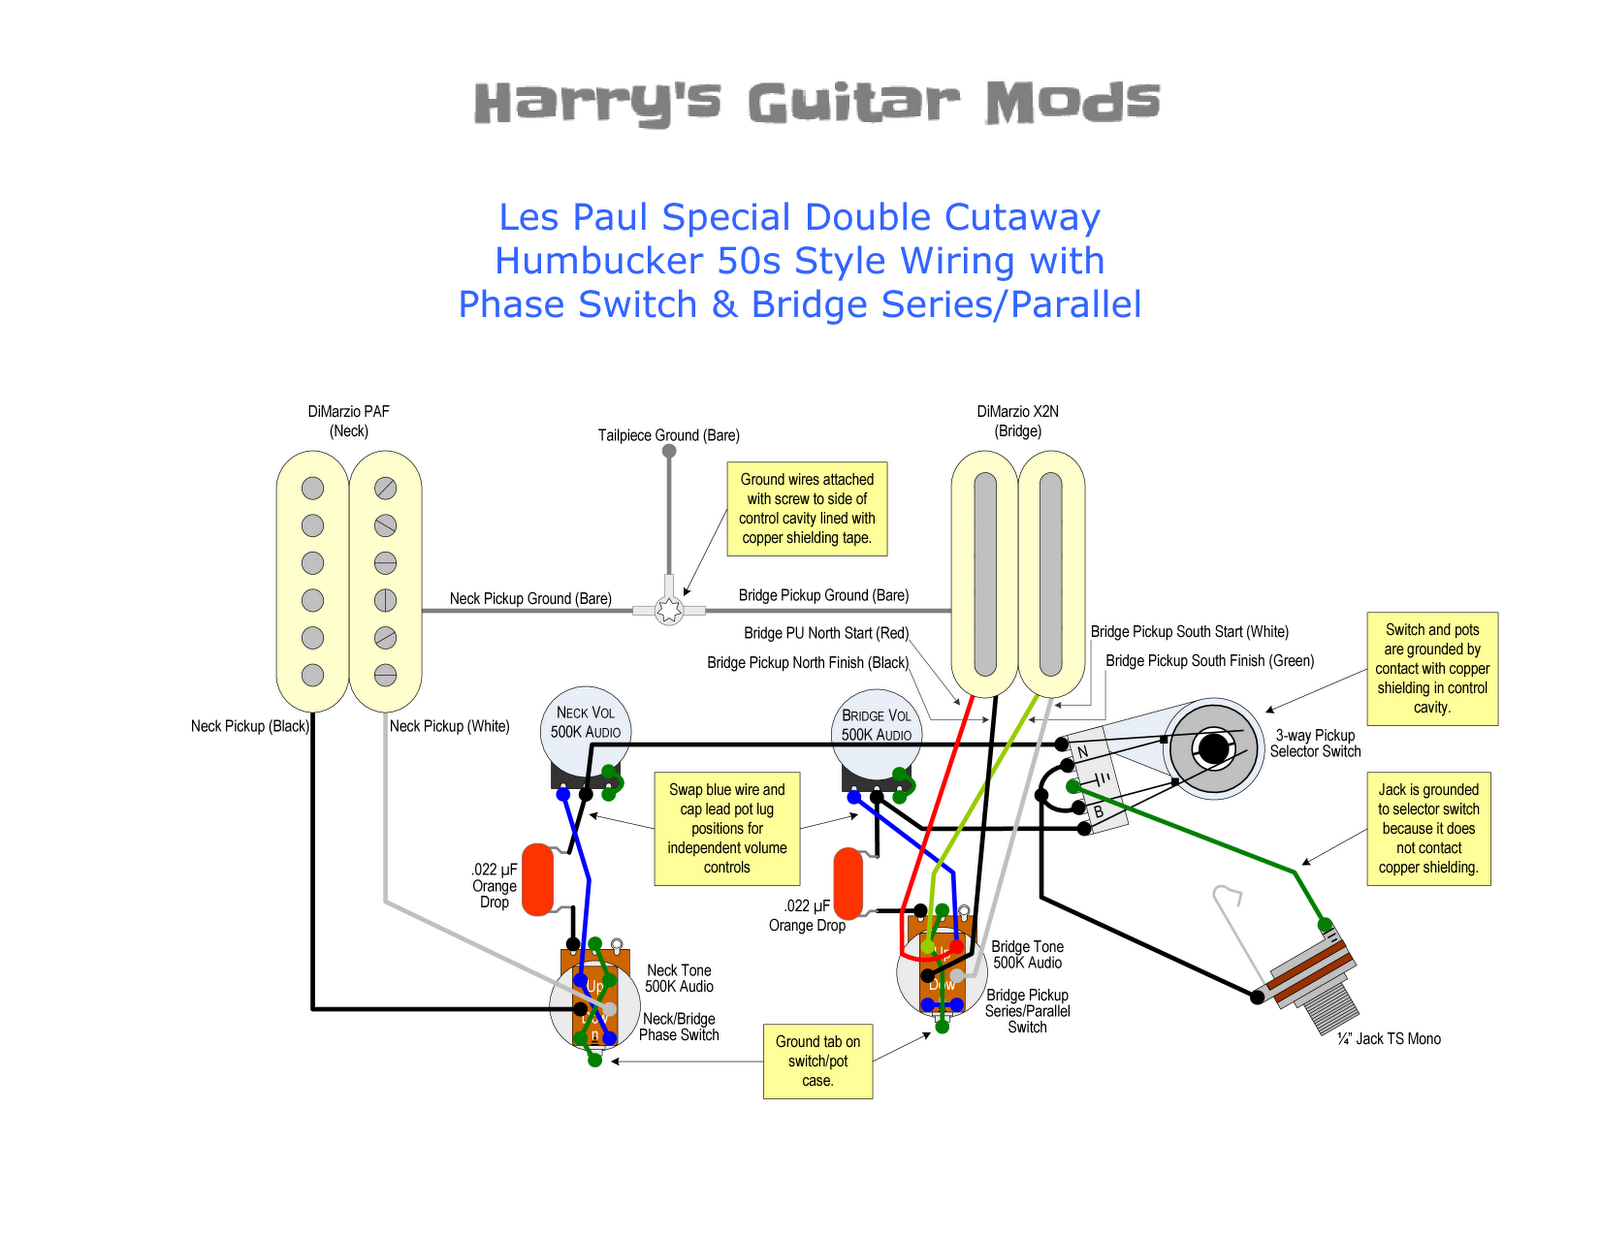 harry s guitar mods controls wiring upgrade i chose to use 50s style wiring orange drop tone caps dimarzio volume pots and push pull tone pots and switchcraft right angle selector switch and